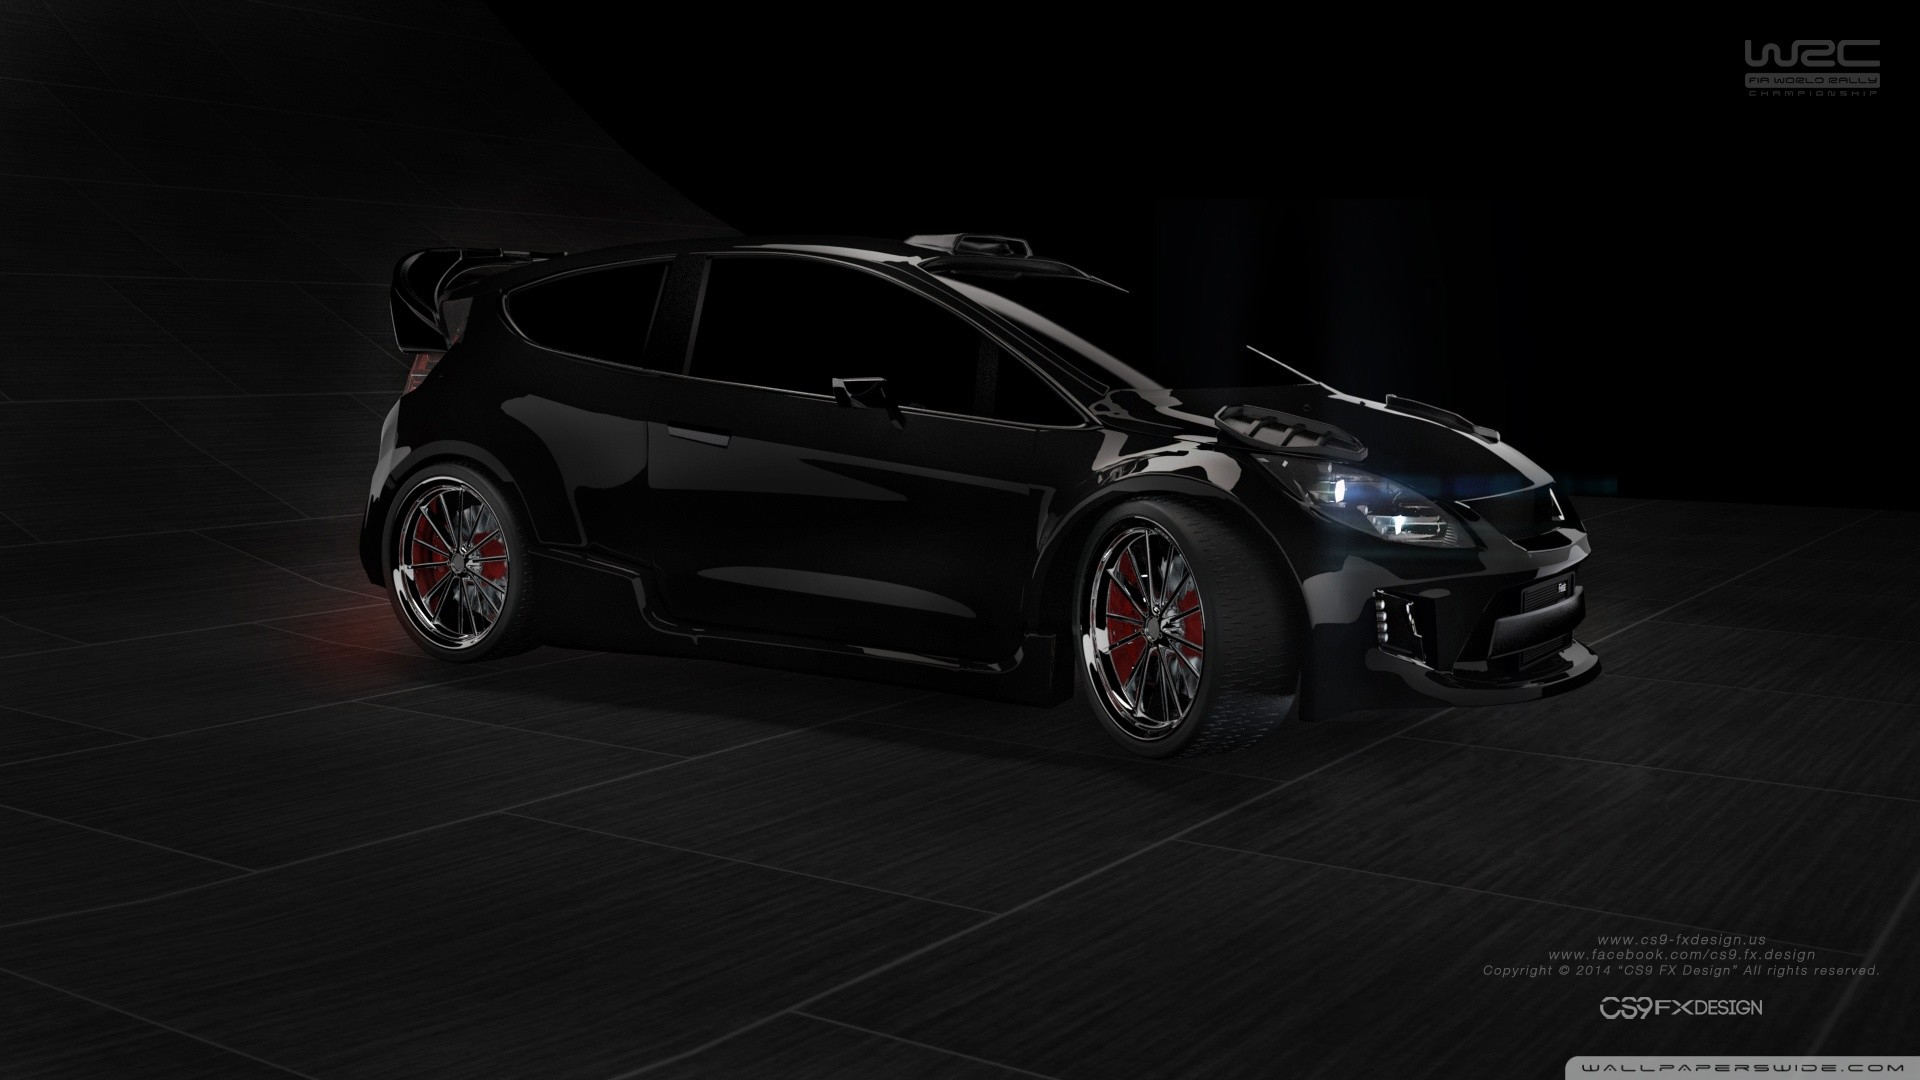 Res: 1920x1080, Ford Fiesta Wallpapers 16 - 1920 X 1080